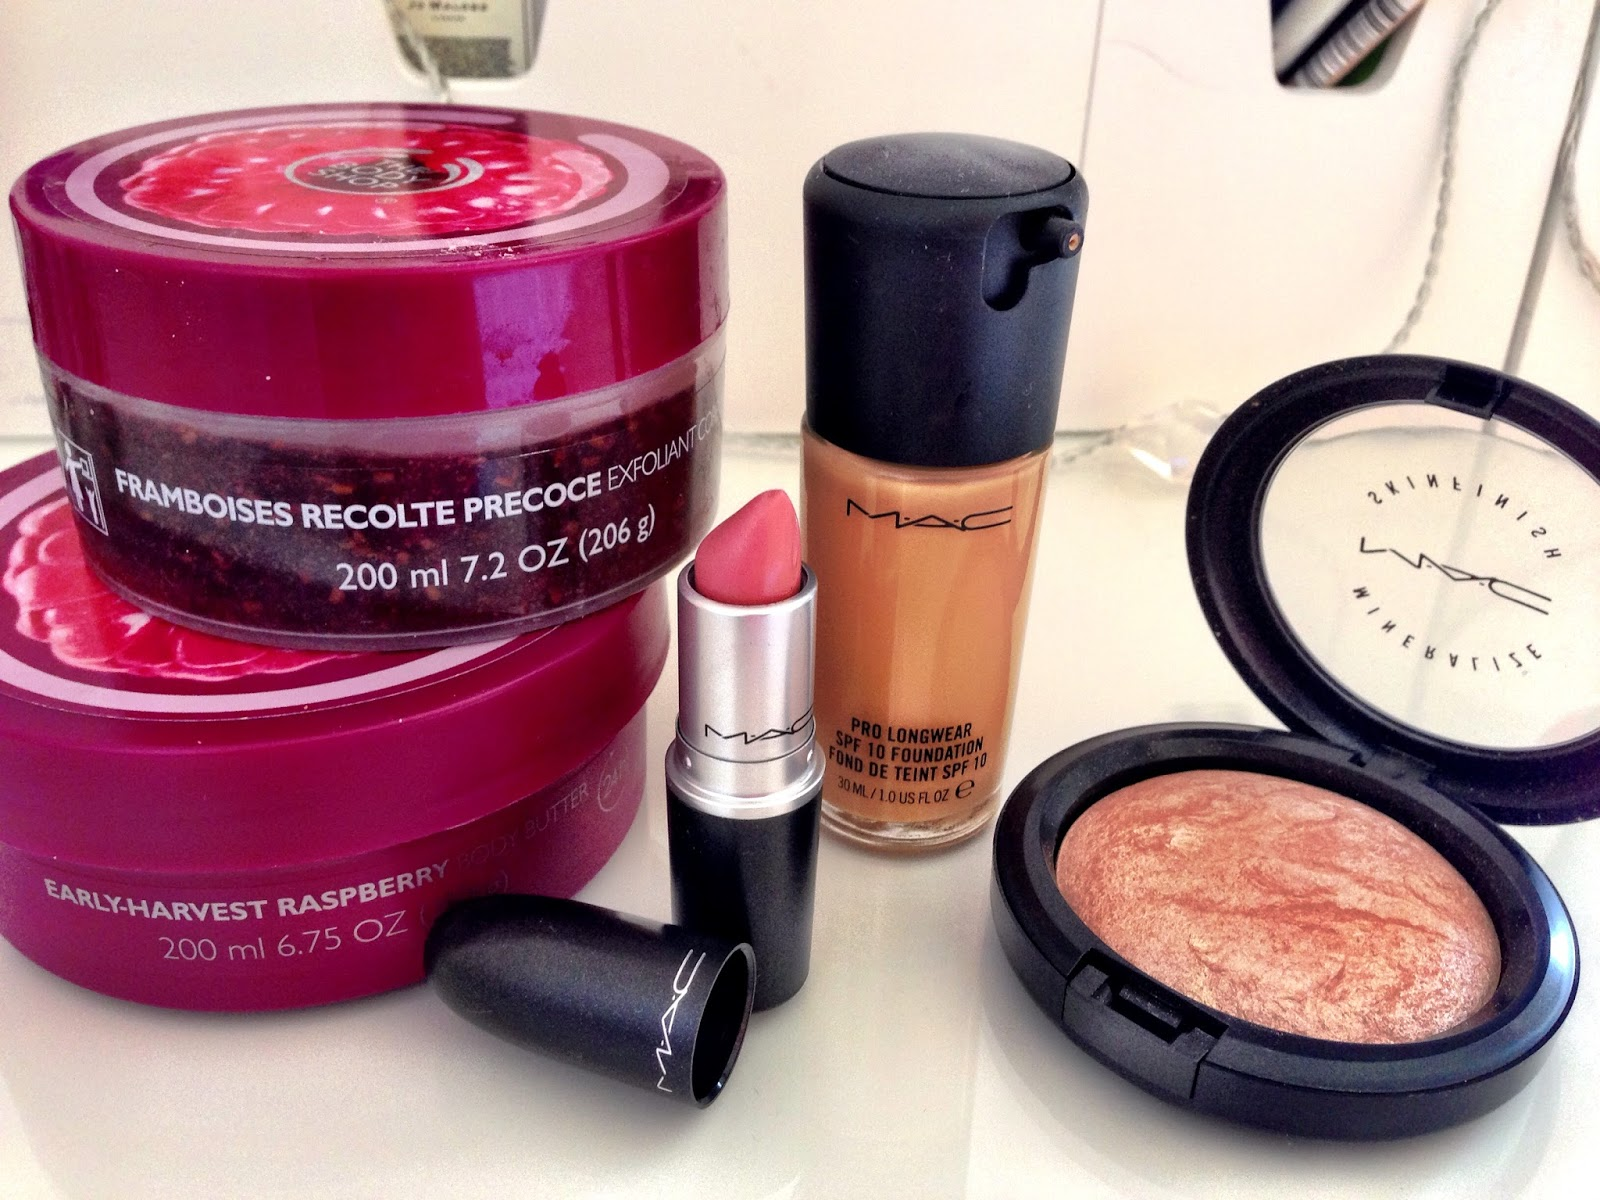 MAC Prolong Wear foundation, MAC MSF Soft & Gentle, MAC Creme Cup Lispstick, The Body Shop Raspberry Body Butter, The Body Shop Raspberry Body Scrub